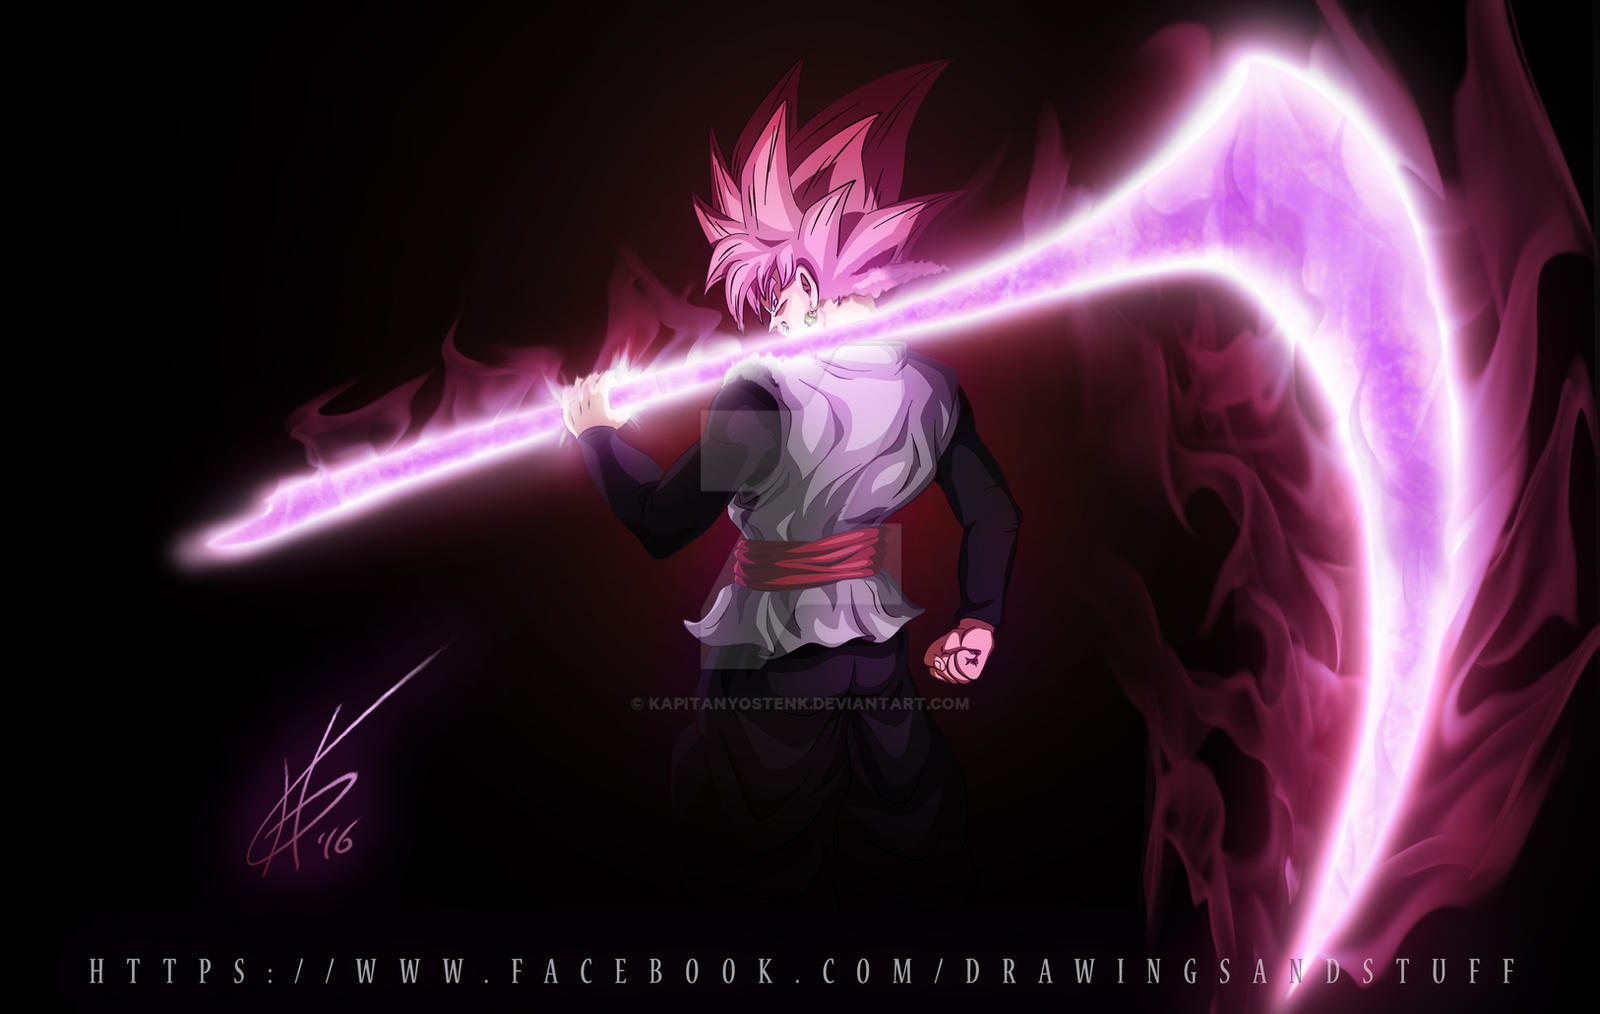 Super Saiyan Rose Goku Black Wallpaper: Super Saiyan Rose Reaper By Kapitanyostenk On DeviantArt